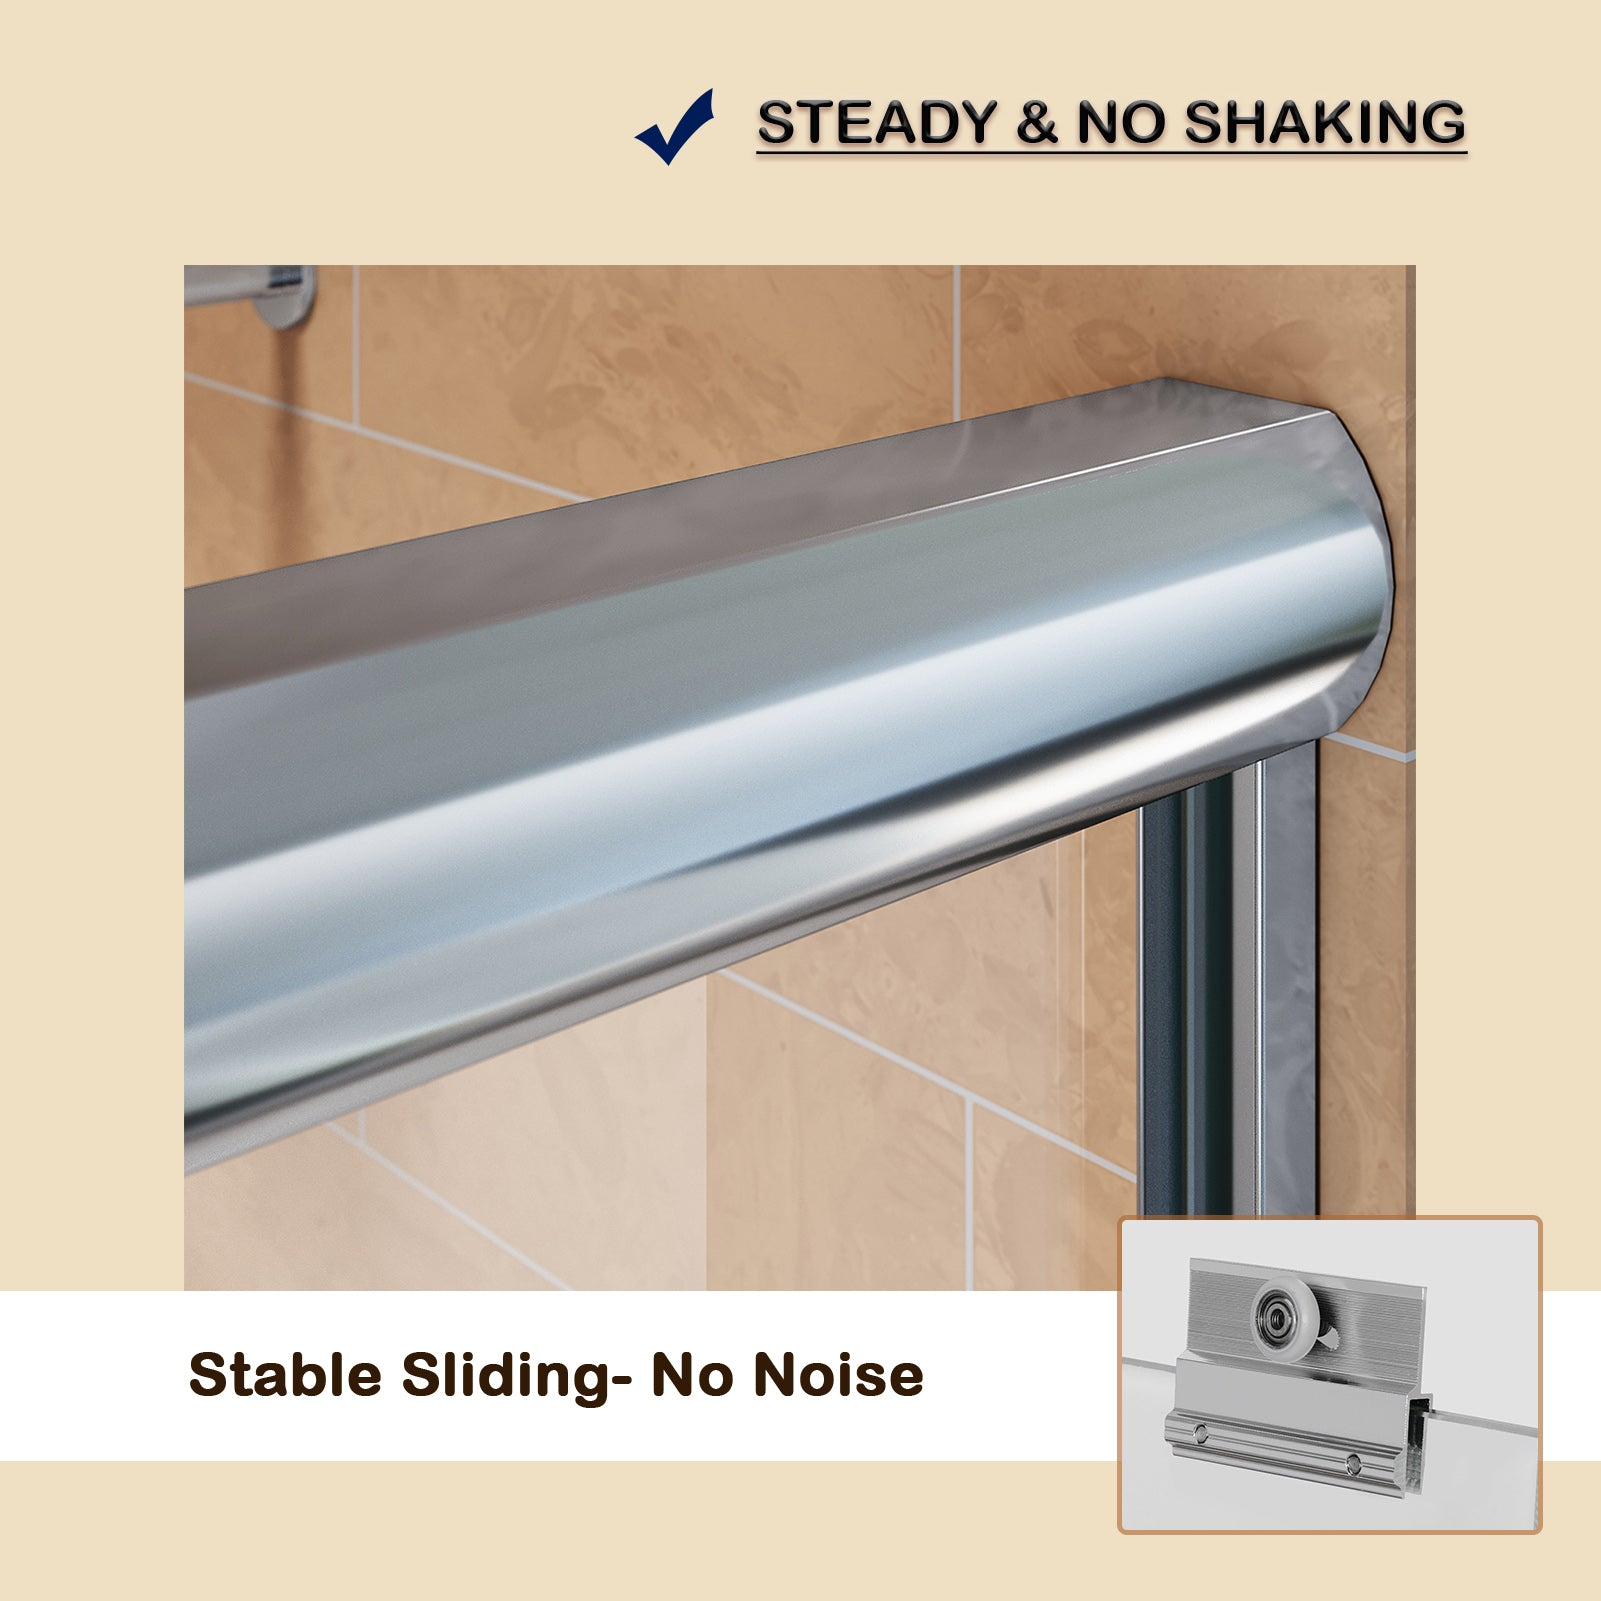 Sunny Shower Classical Bypass Sliding Bathtub Doors Top Seller B020 Series in Chrome Finish - SUNNY SHOWER